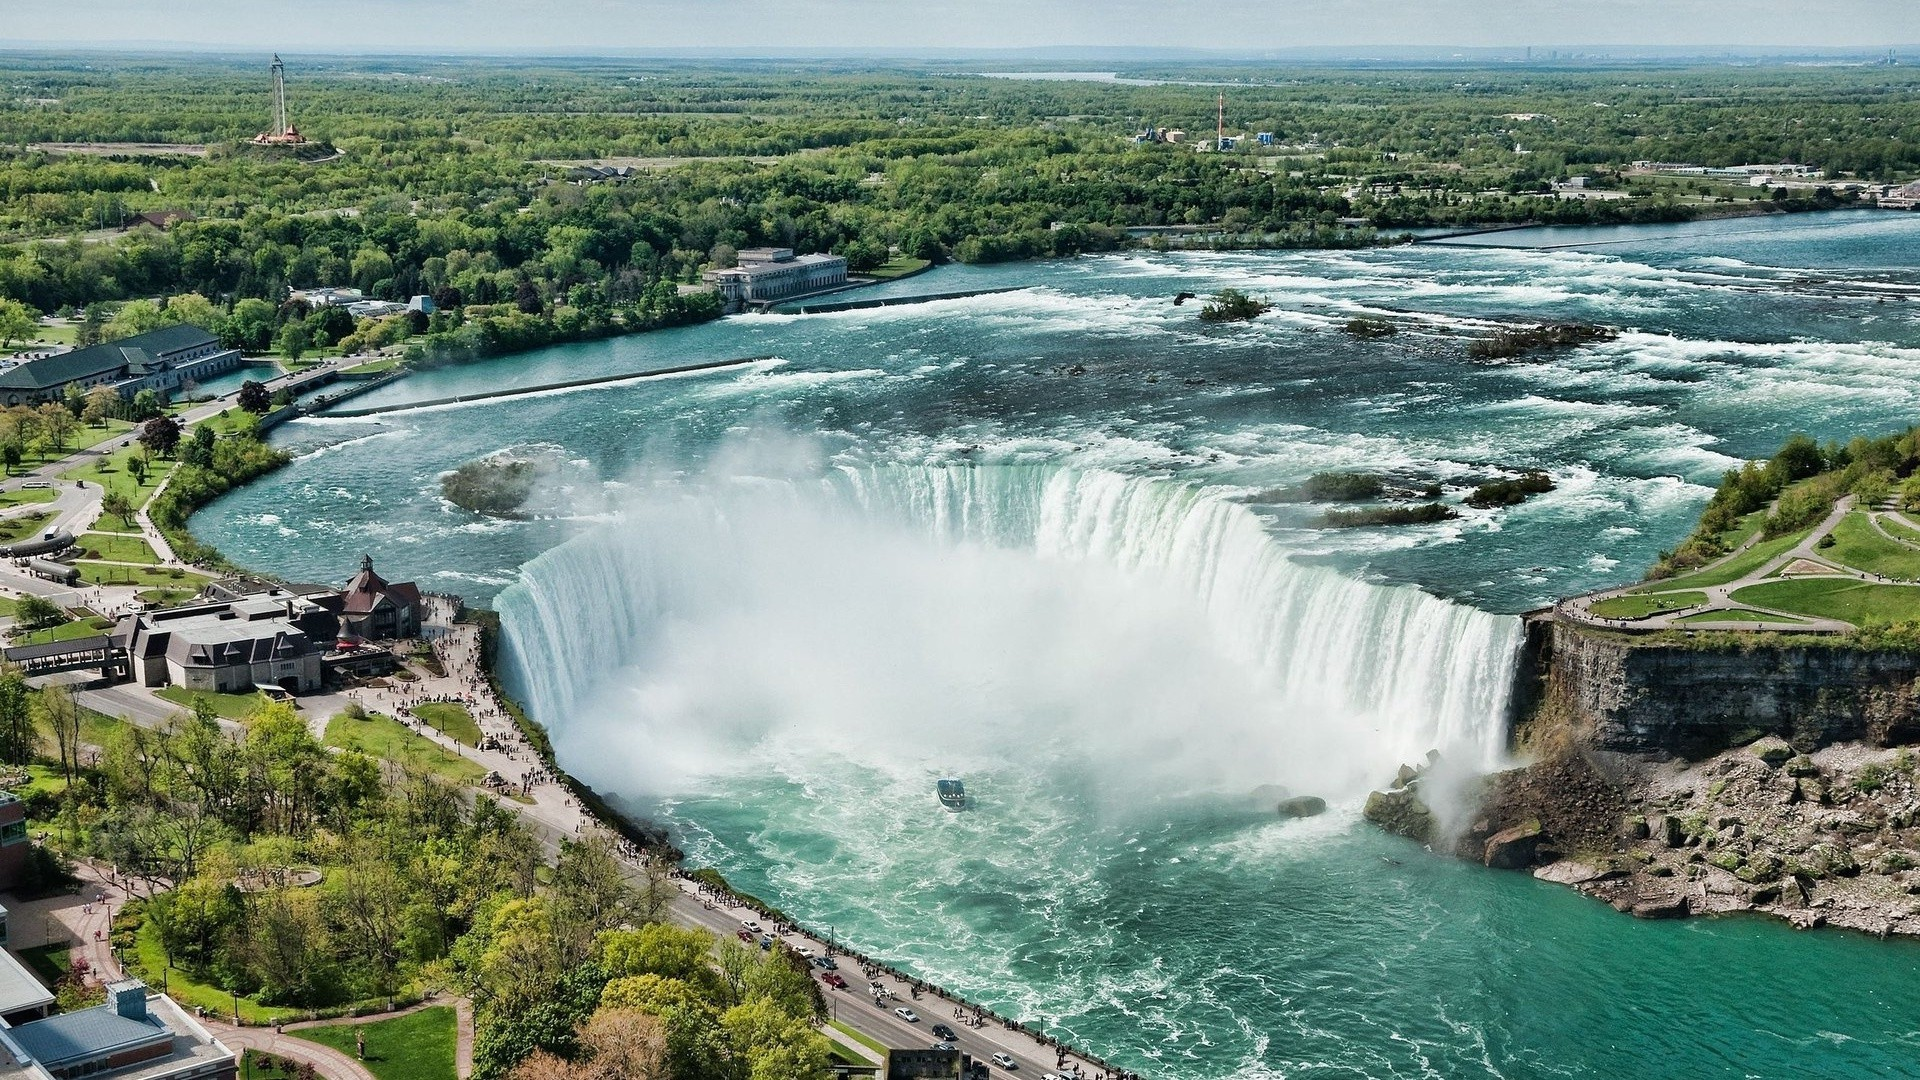 Download waterfall live wallpaper android download in many 1920x1080